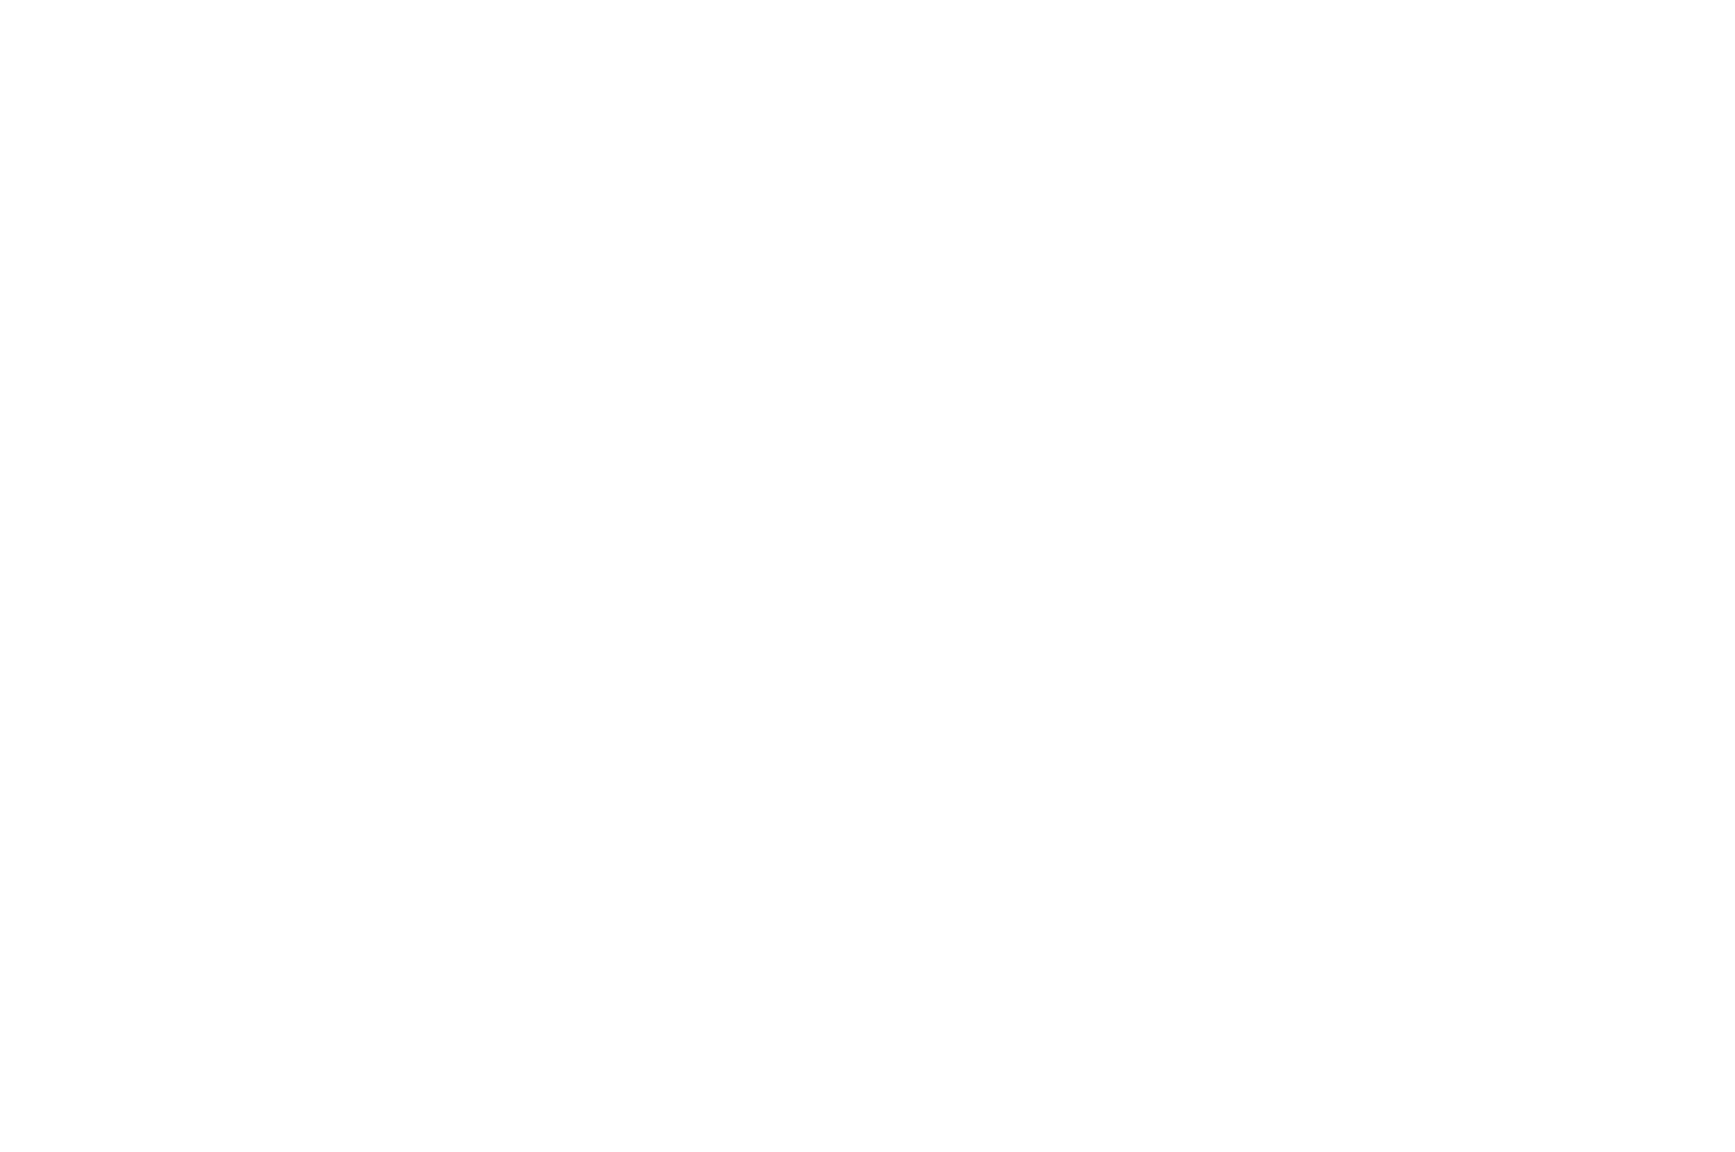 WINNER - Audience Choice Award - GI Film Festival San Diego - 2017_white.png